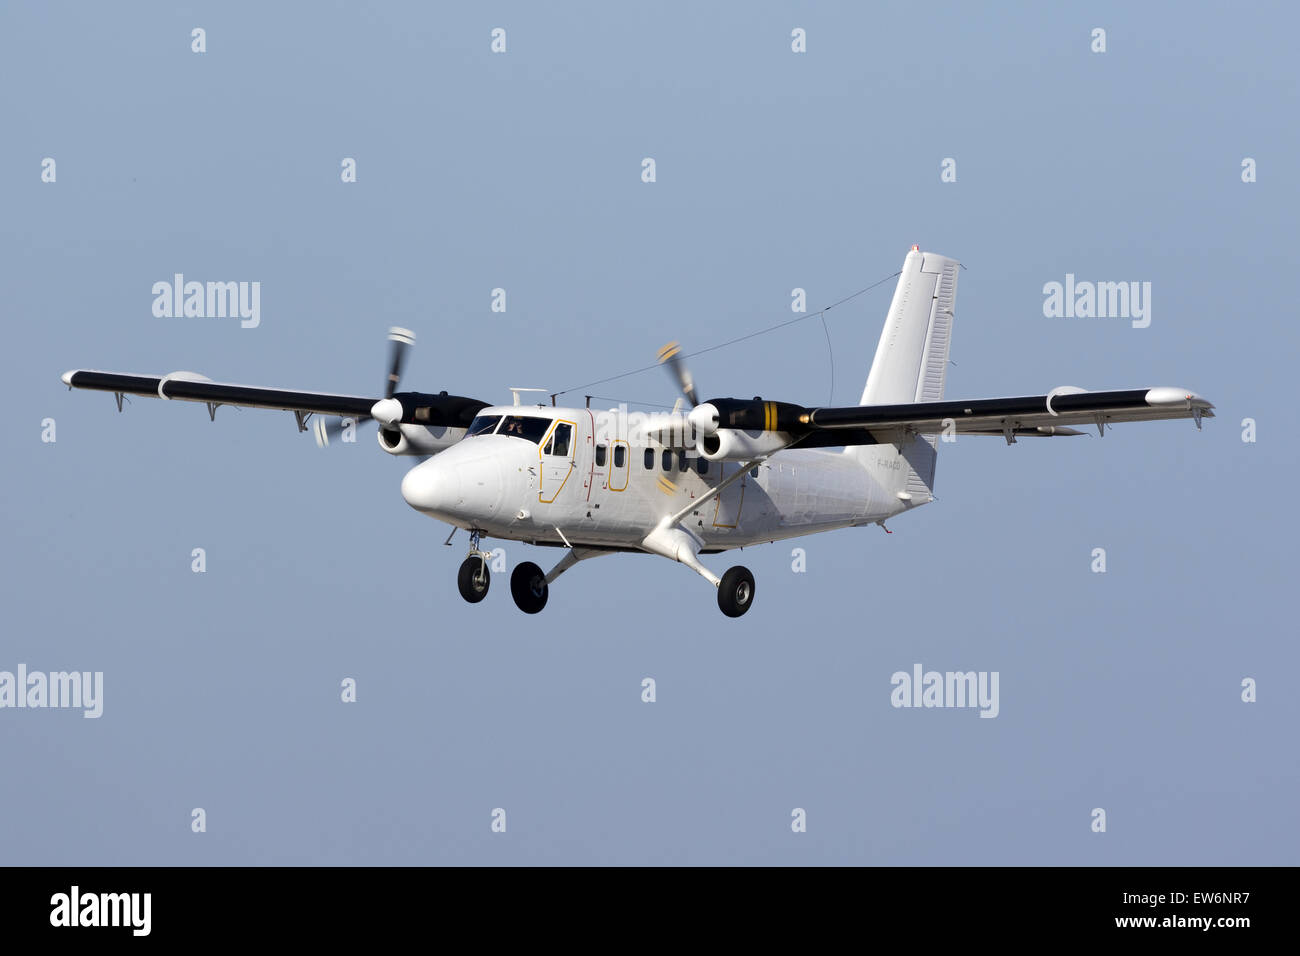 French Air Force DeHavilland Canada DHC-6 Twin Otter landing runway 31. Stock Photo